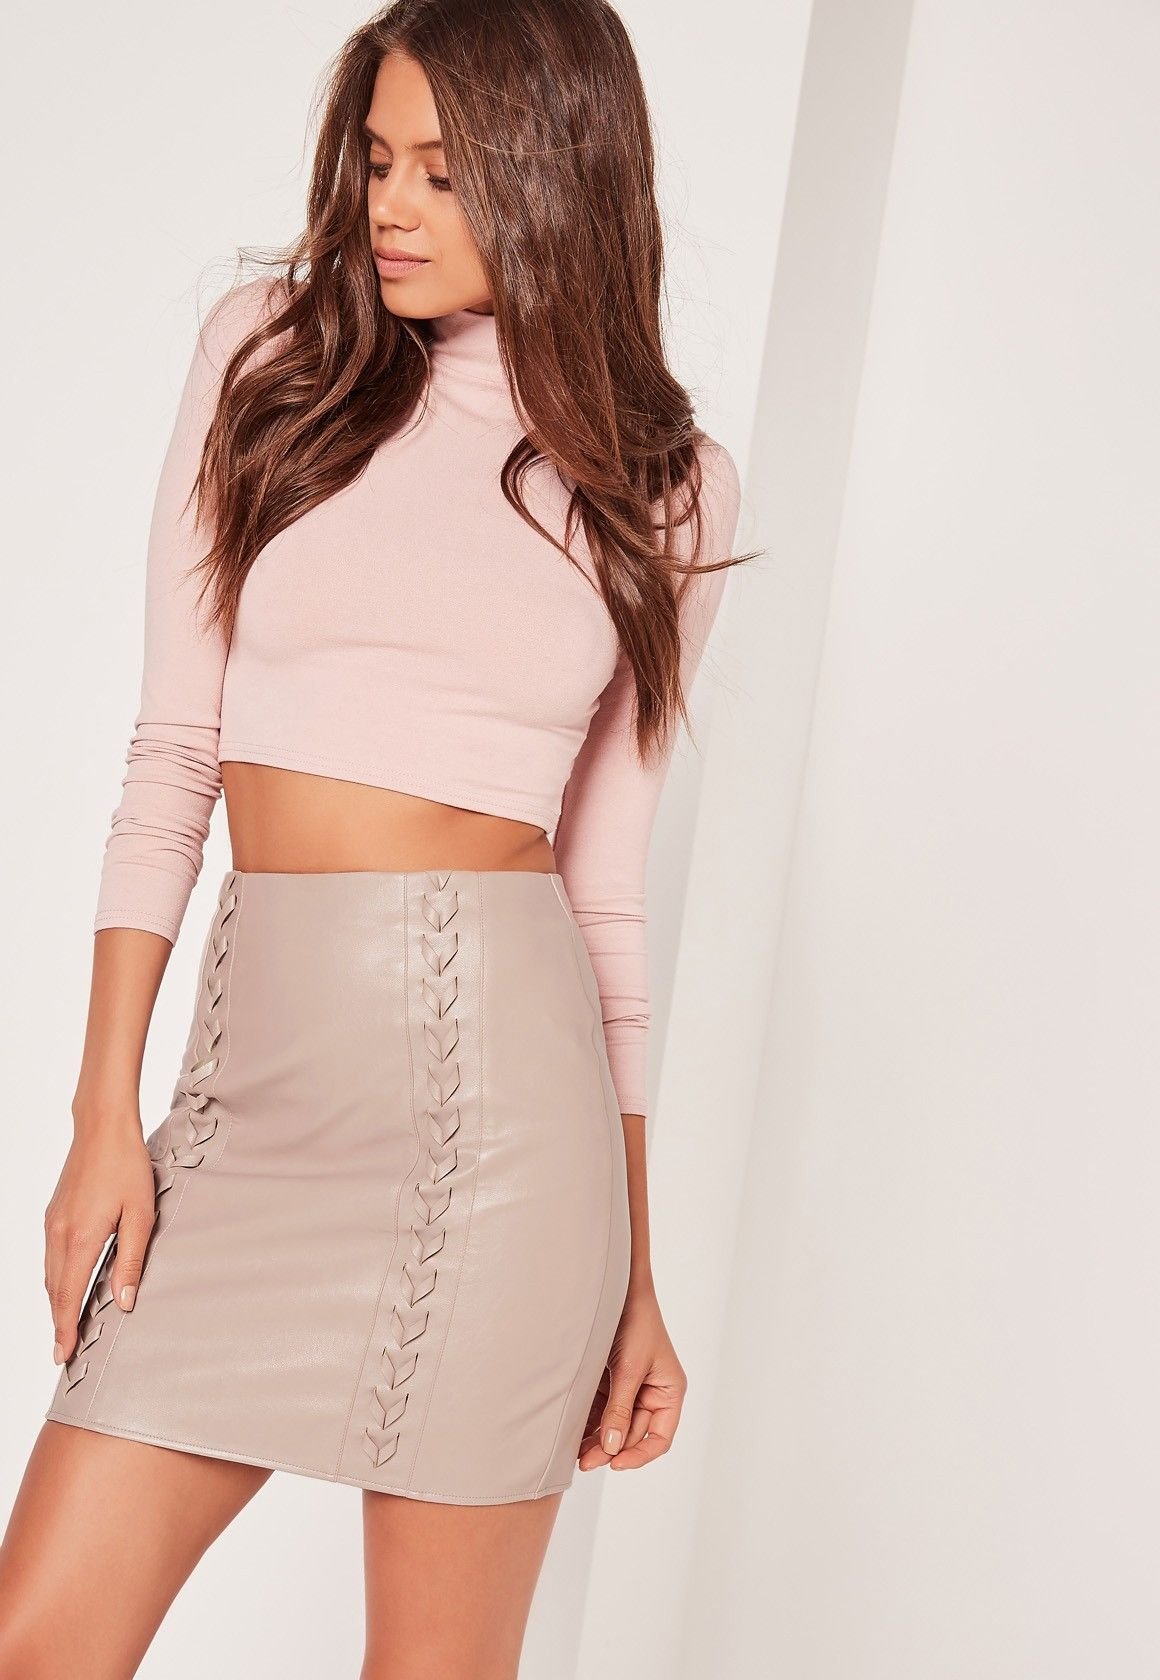 c8616a1cb Missguided - Whipstitch Front Faux Leather Mini Skirt Grey